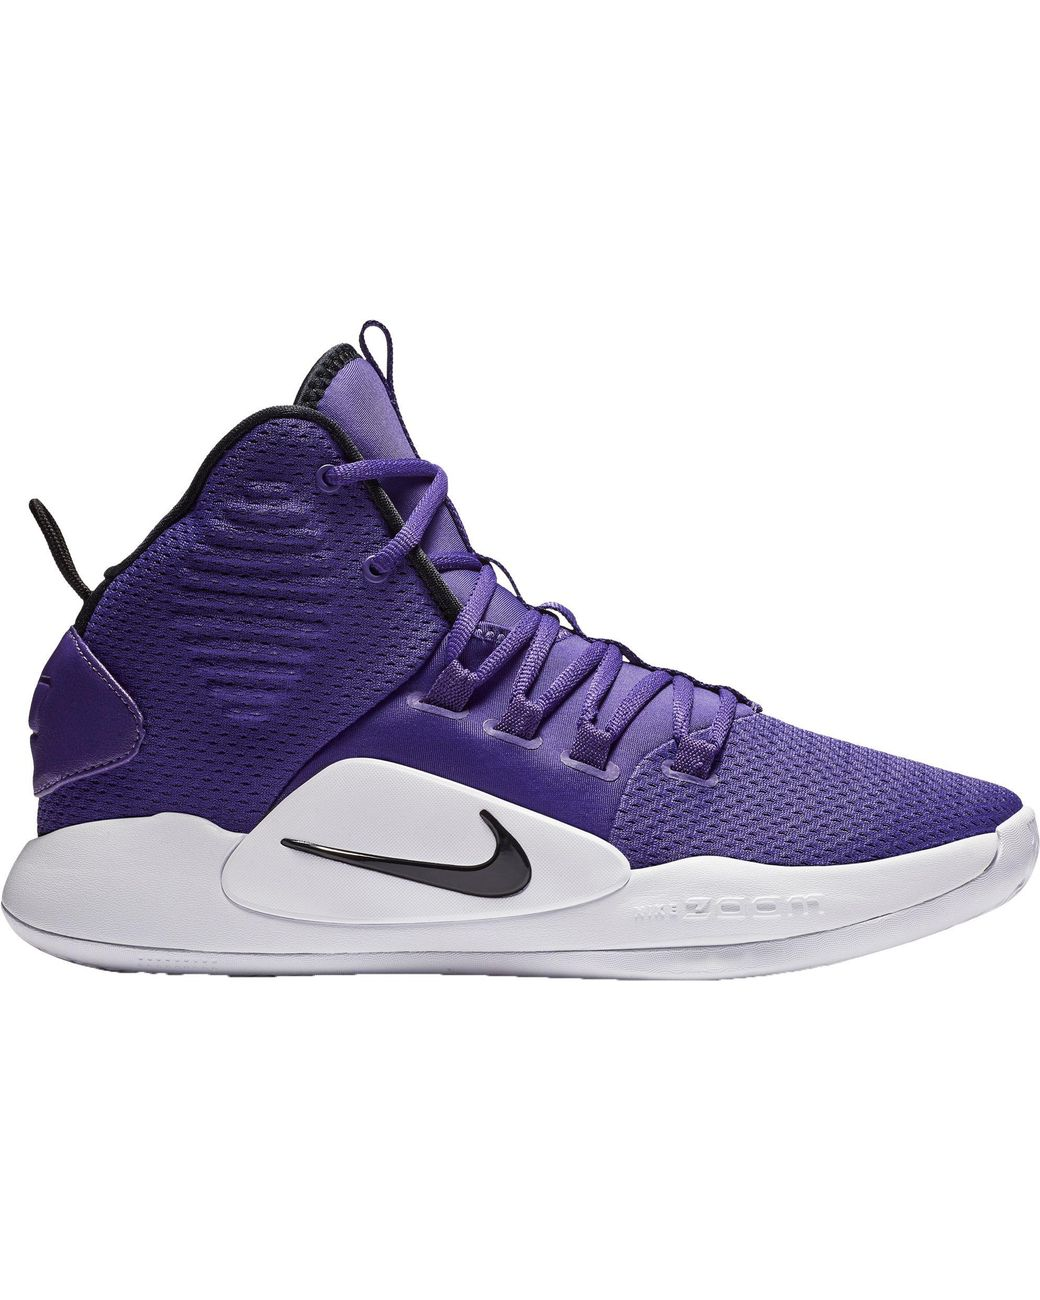 3910bc1d0161 Nike Hyperdunk X Mid Tb Basketball Shoes in Purple for Men - Lyst